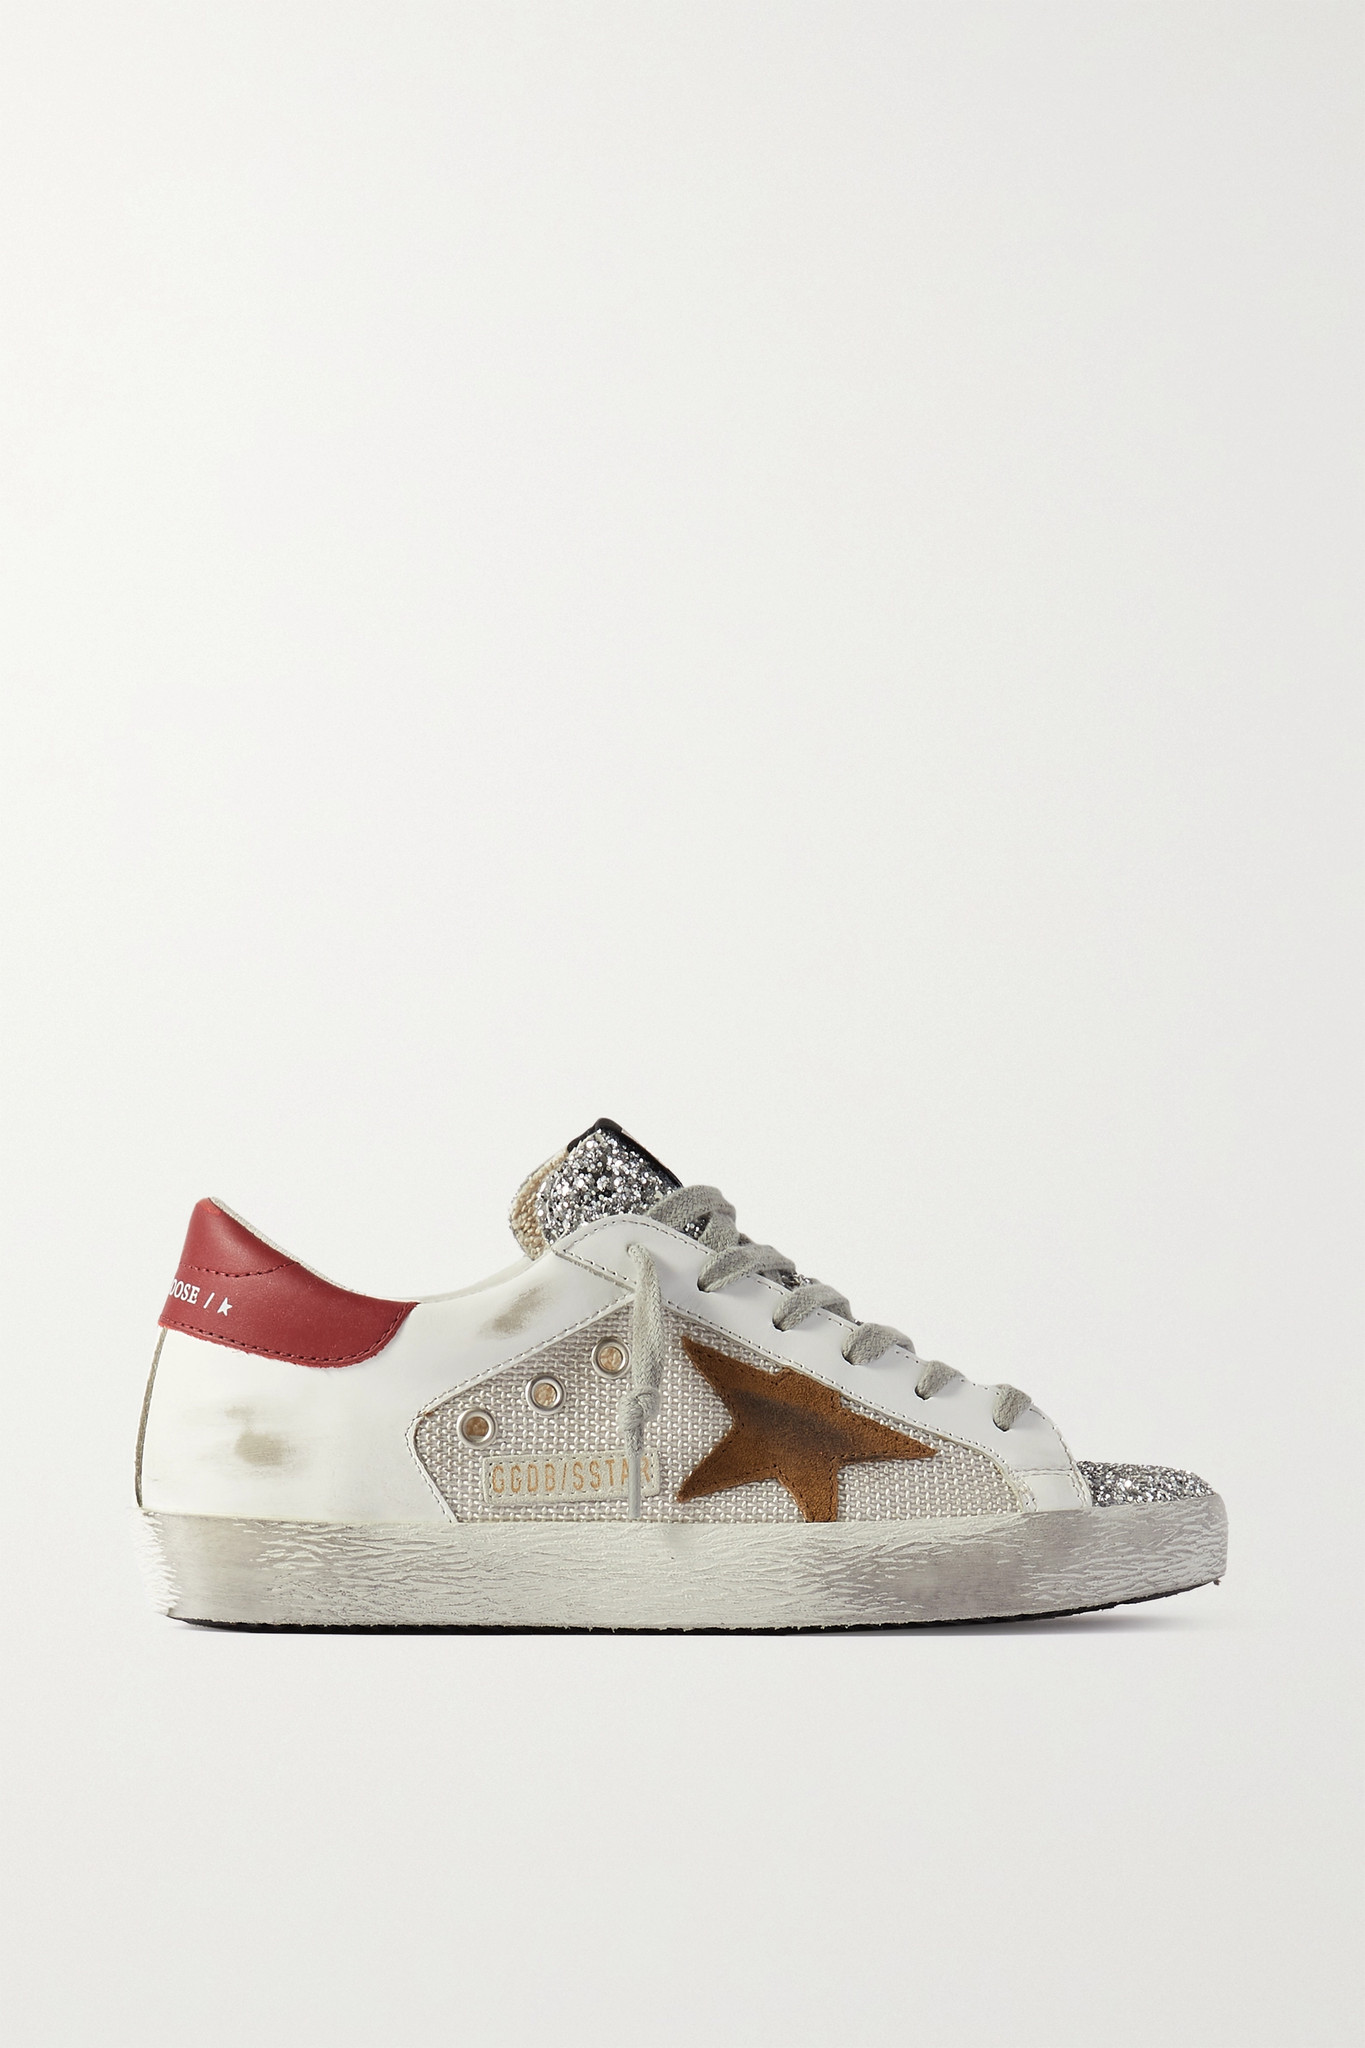 GOLDEN GOOSE - Superstar Glittered Distressed Leather, Suede And Canvas Sneakers - White - IT38